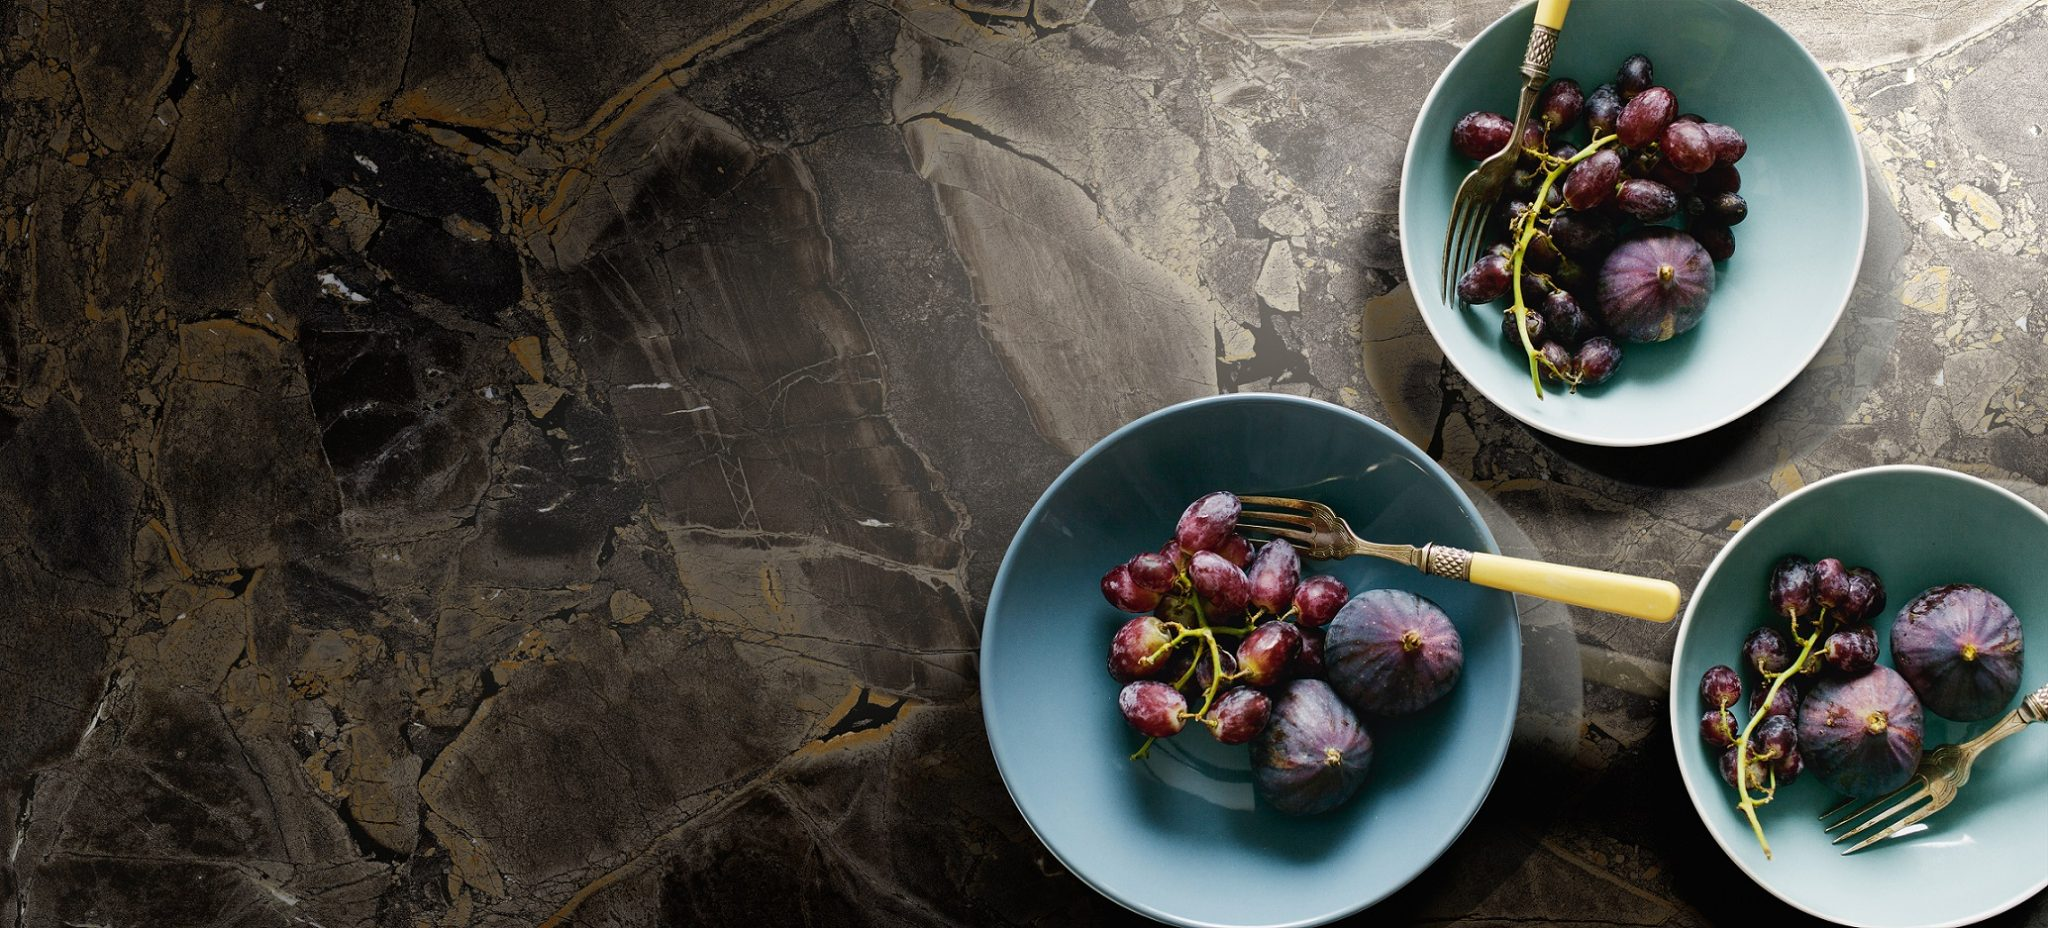 Healthy Breakfast: Figs And Black Grapes.